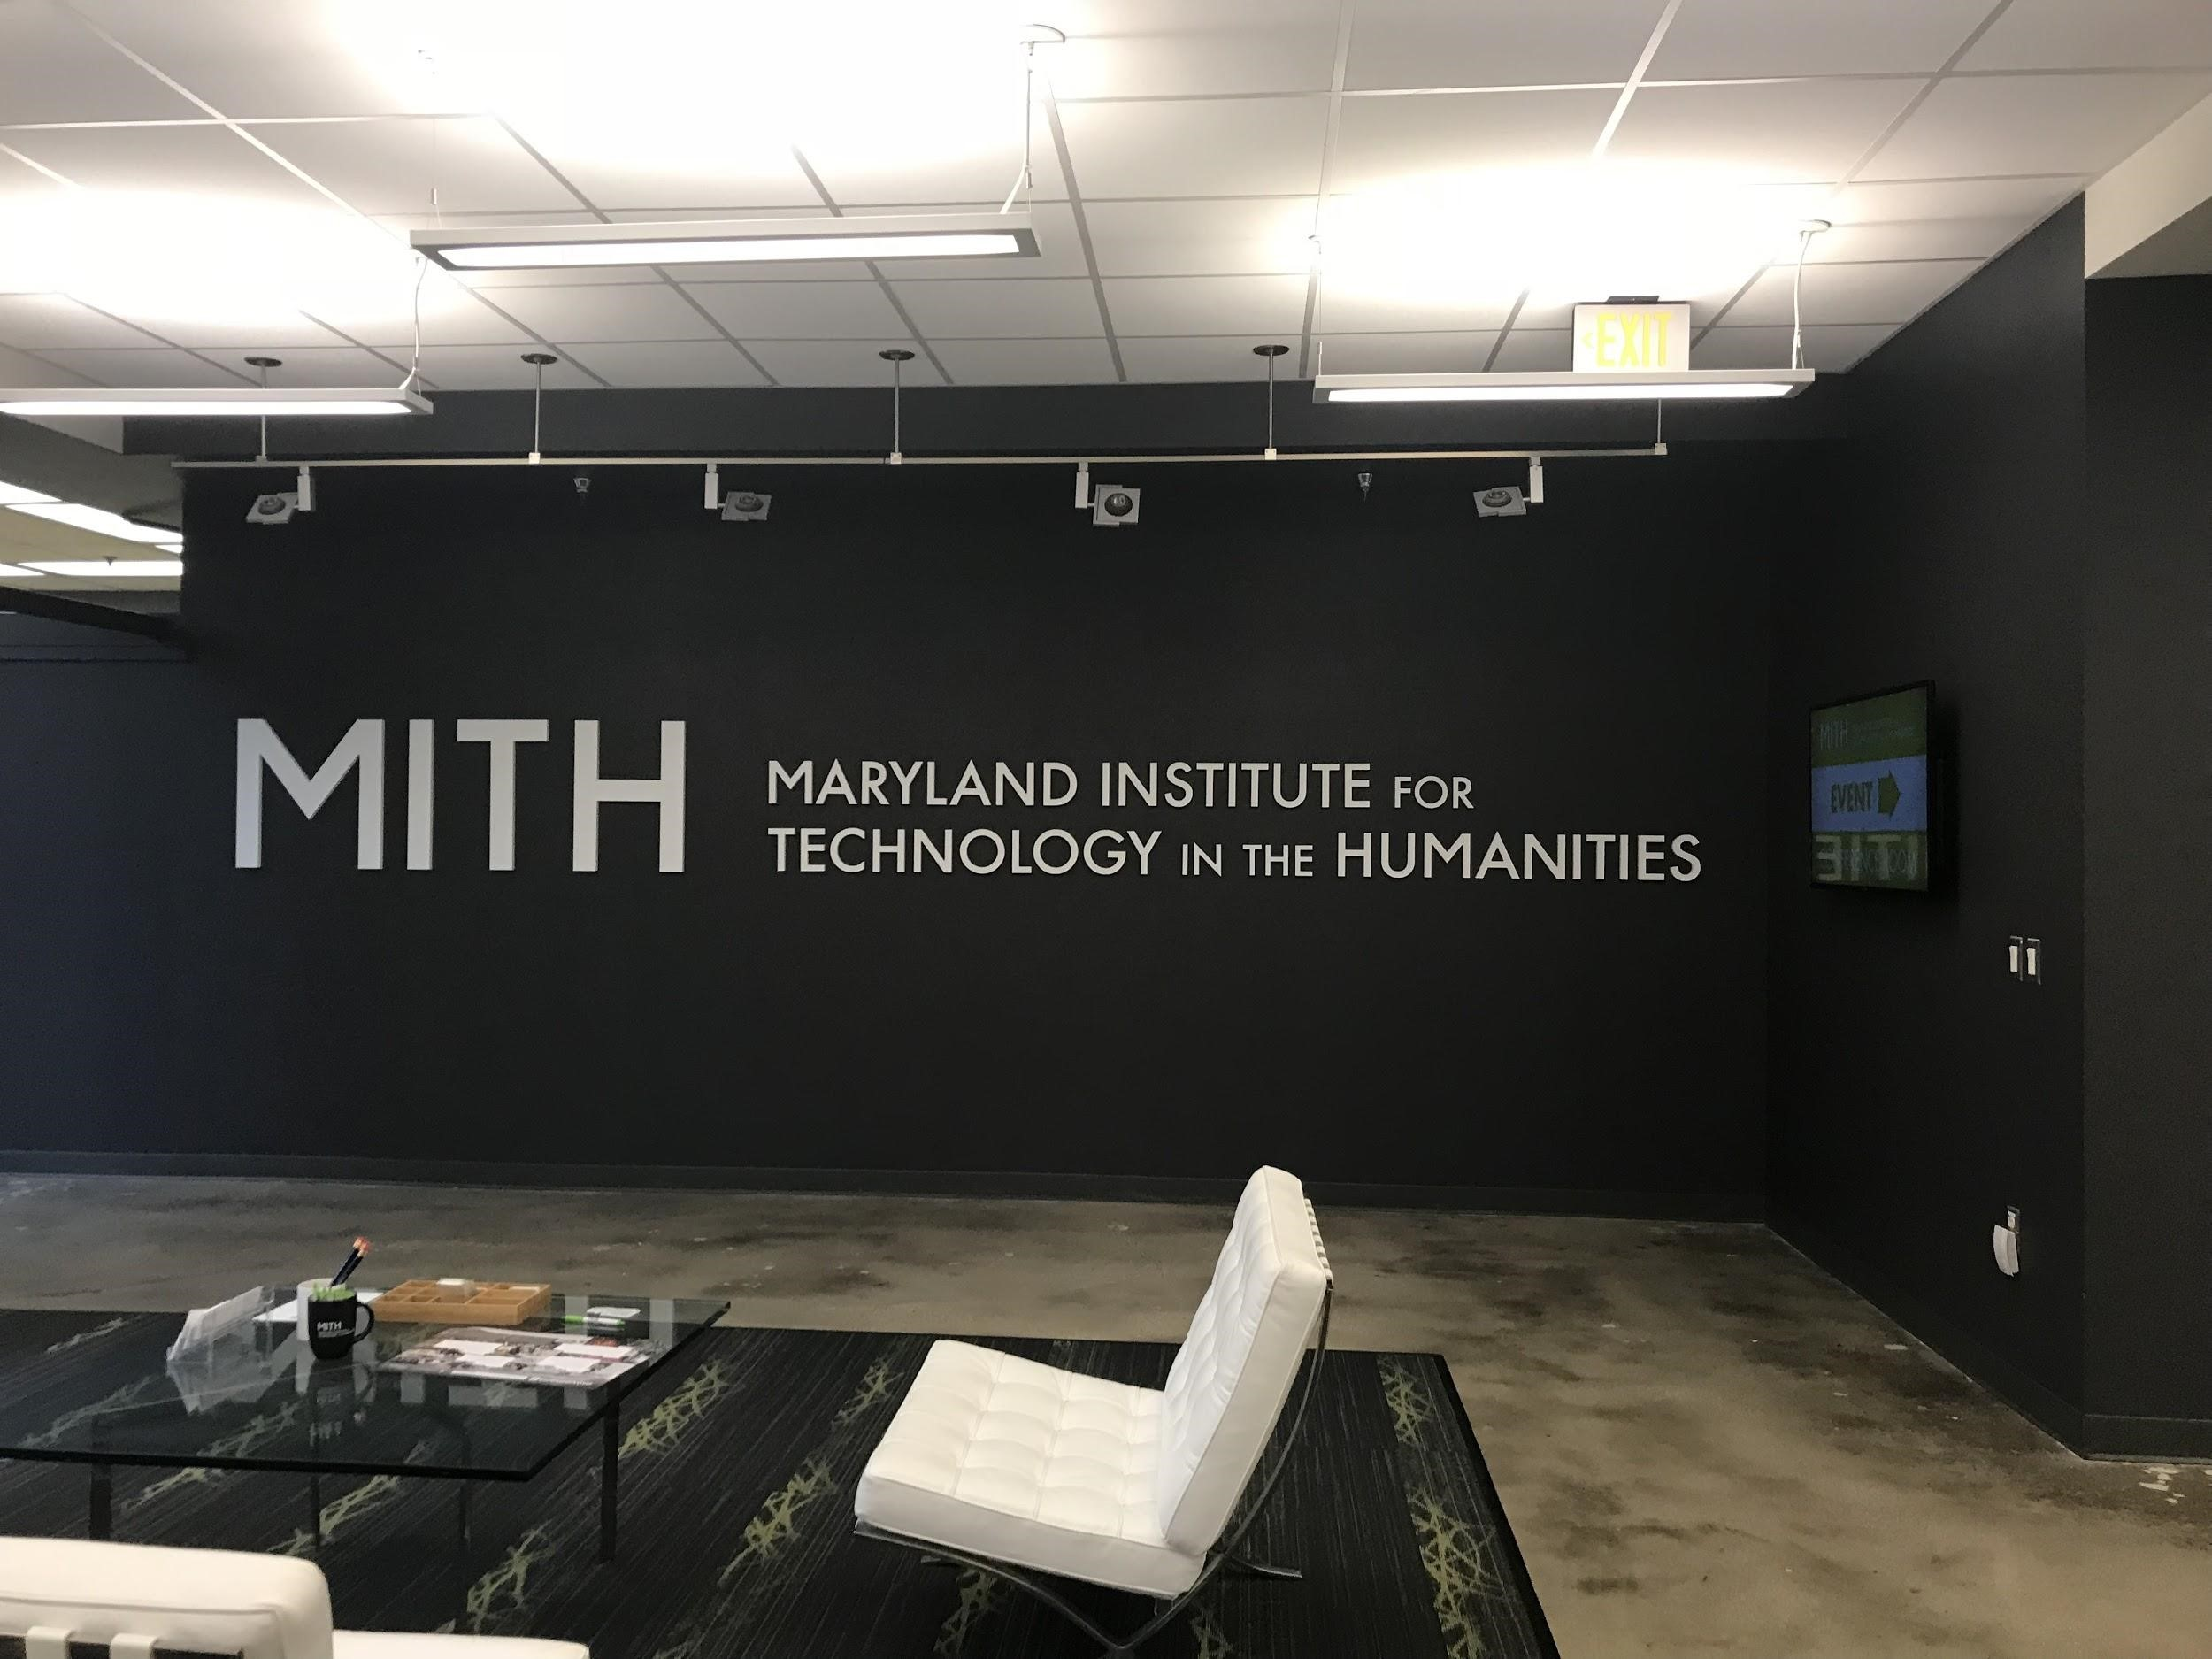 On Tuesday, Nov. 8, 2017, Walter Forsberg, a media archivist for the Smithsonian National Museum of African American History and Culture, came to the Maryland Institute for Technology in the Humanities (MITH) to discuss media preservation. MITH is dedicated to researching how technology can help us learn more about culture. Photo courtesy of Amina Lampkin.